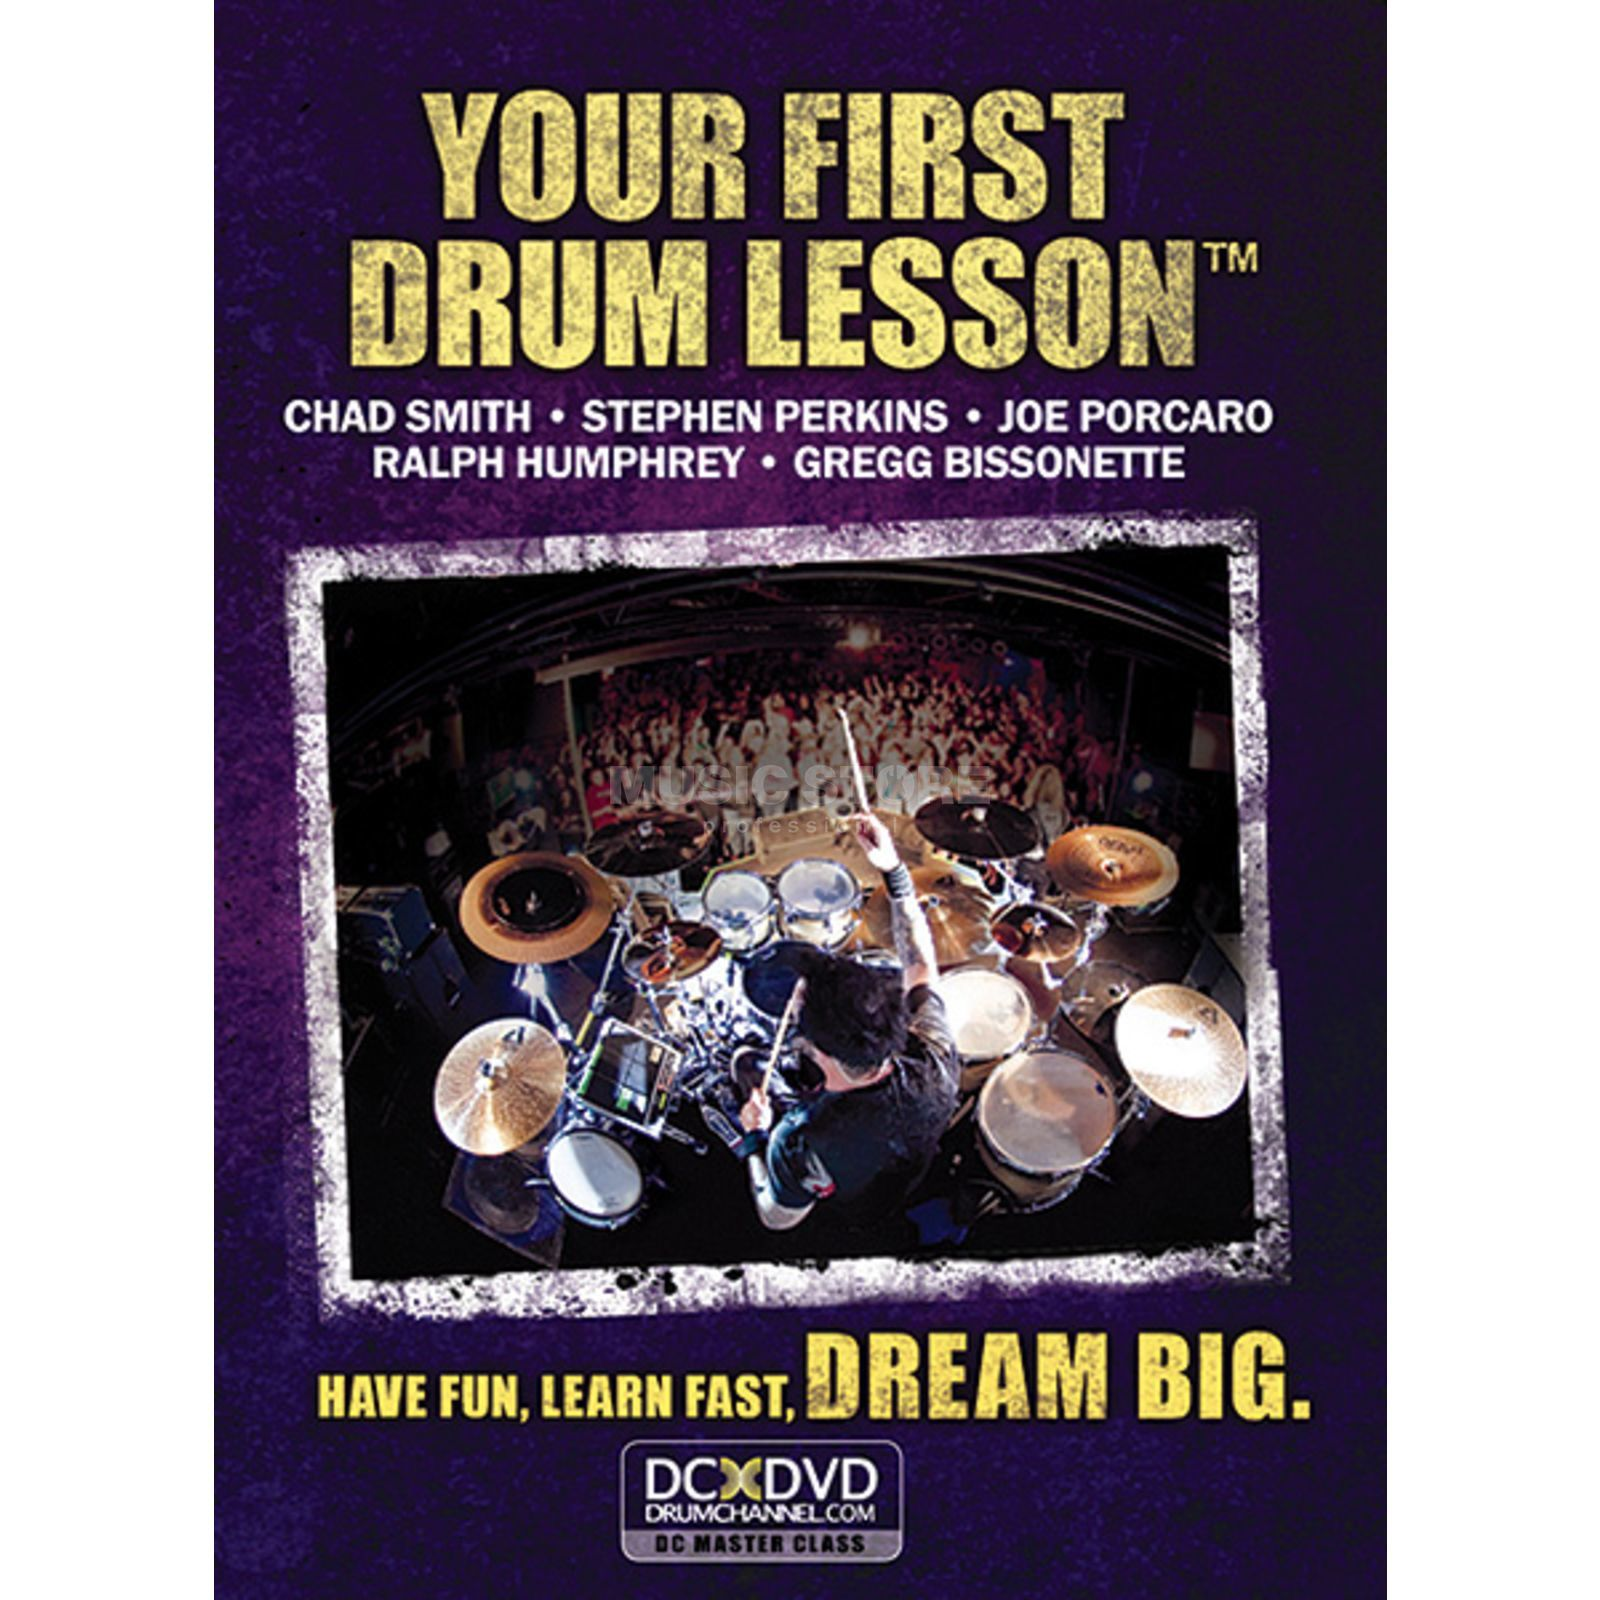 Alfred Music First Drum Lesson DVD Produktbillede